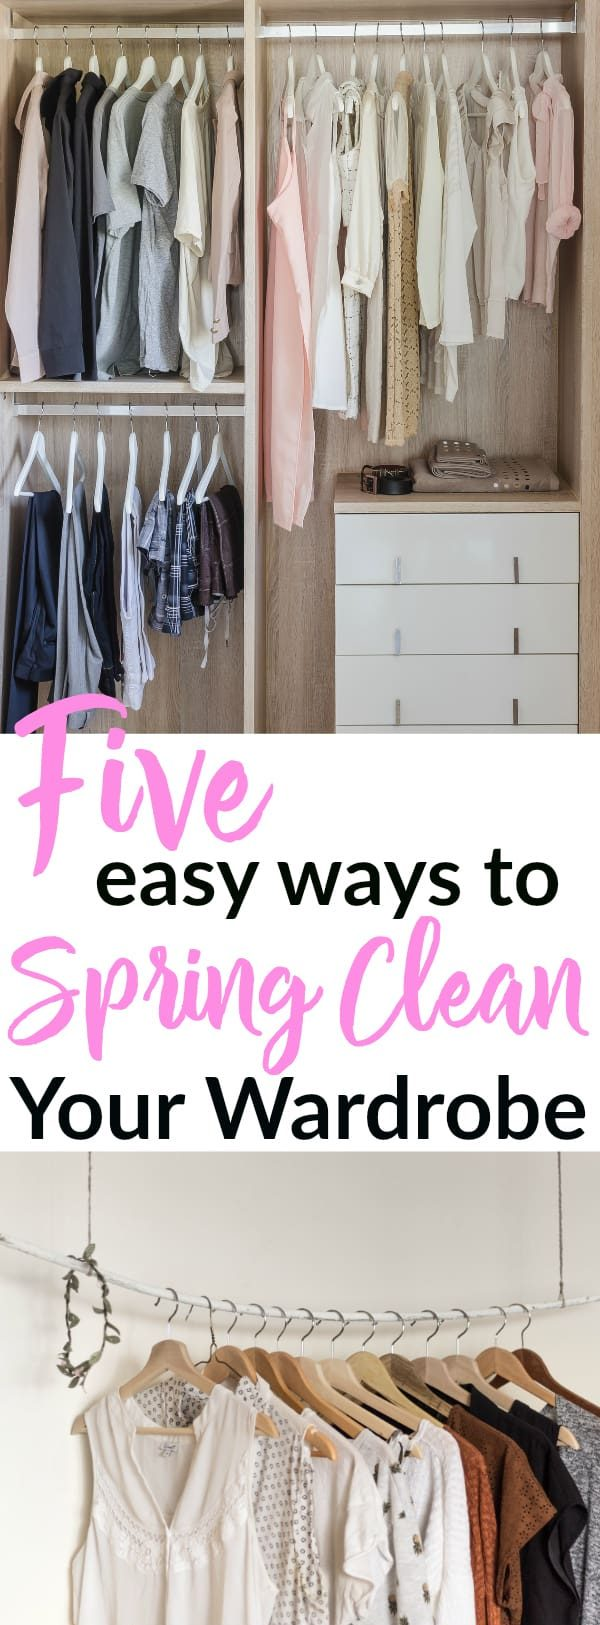 Spring Clean your wardrobe with these 5 easy tricks! Spring Cleaning | Wardrobe Clean-out | Cleaning Hacks | Minimalism | Wardrobe Hacks | Organizing Wardrobe #springcleaning #wardrobe #minimalism #sustainable